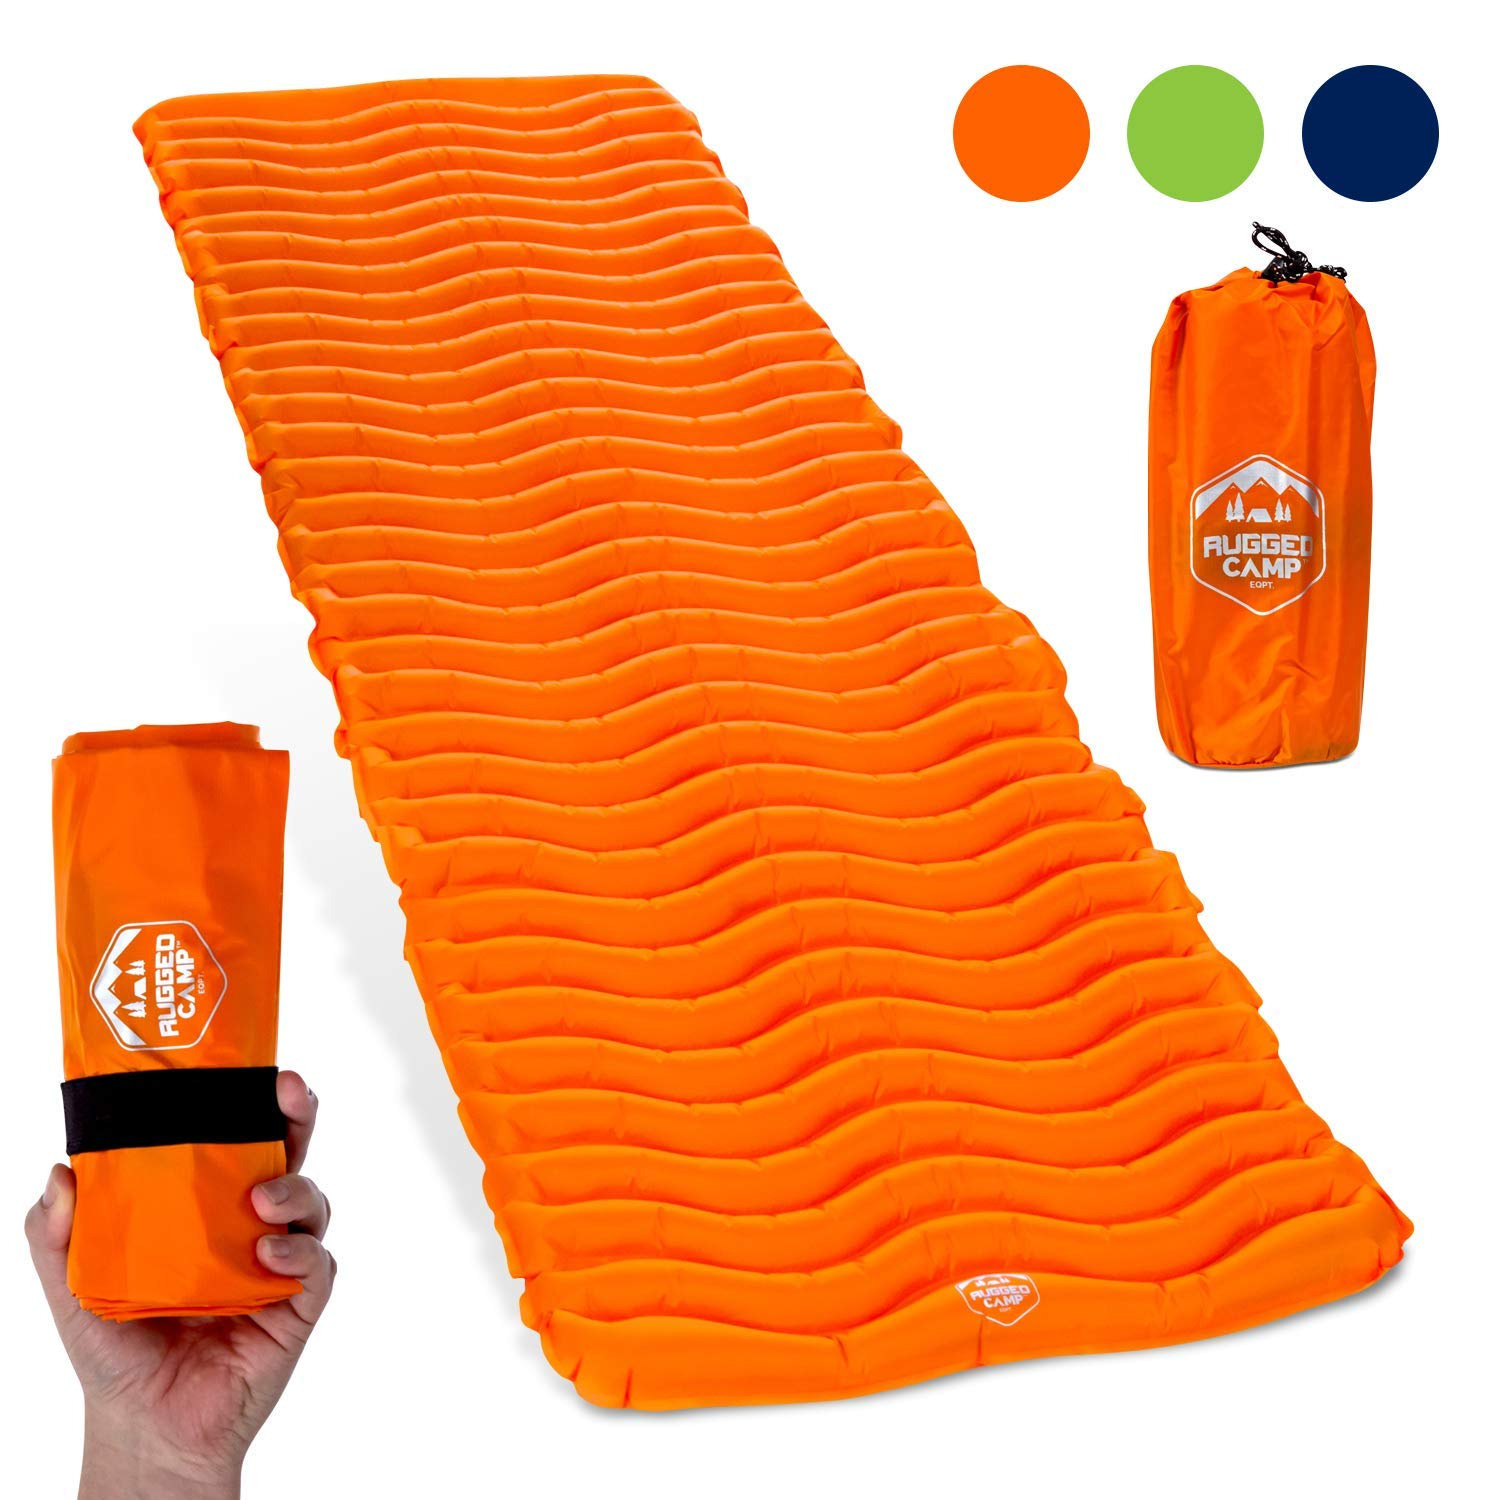 Camping Sleeping Pad - Ultralight 17.2 OZ - Best Inflatable Sleeping Air Mattress for Backpacking, Hiking, Traveling - Lightweight & Compact Camp Sleep Pad (Air Mat+ Orange) by Rugged Camp